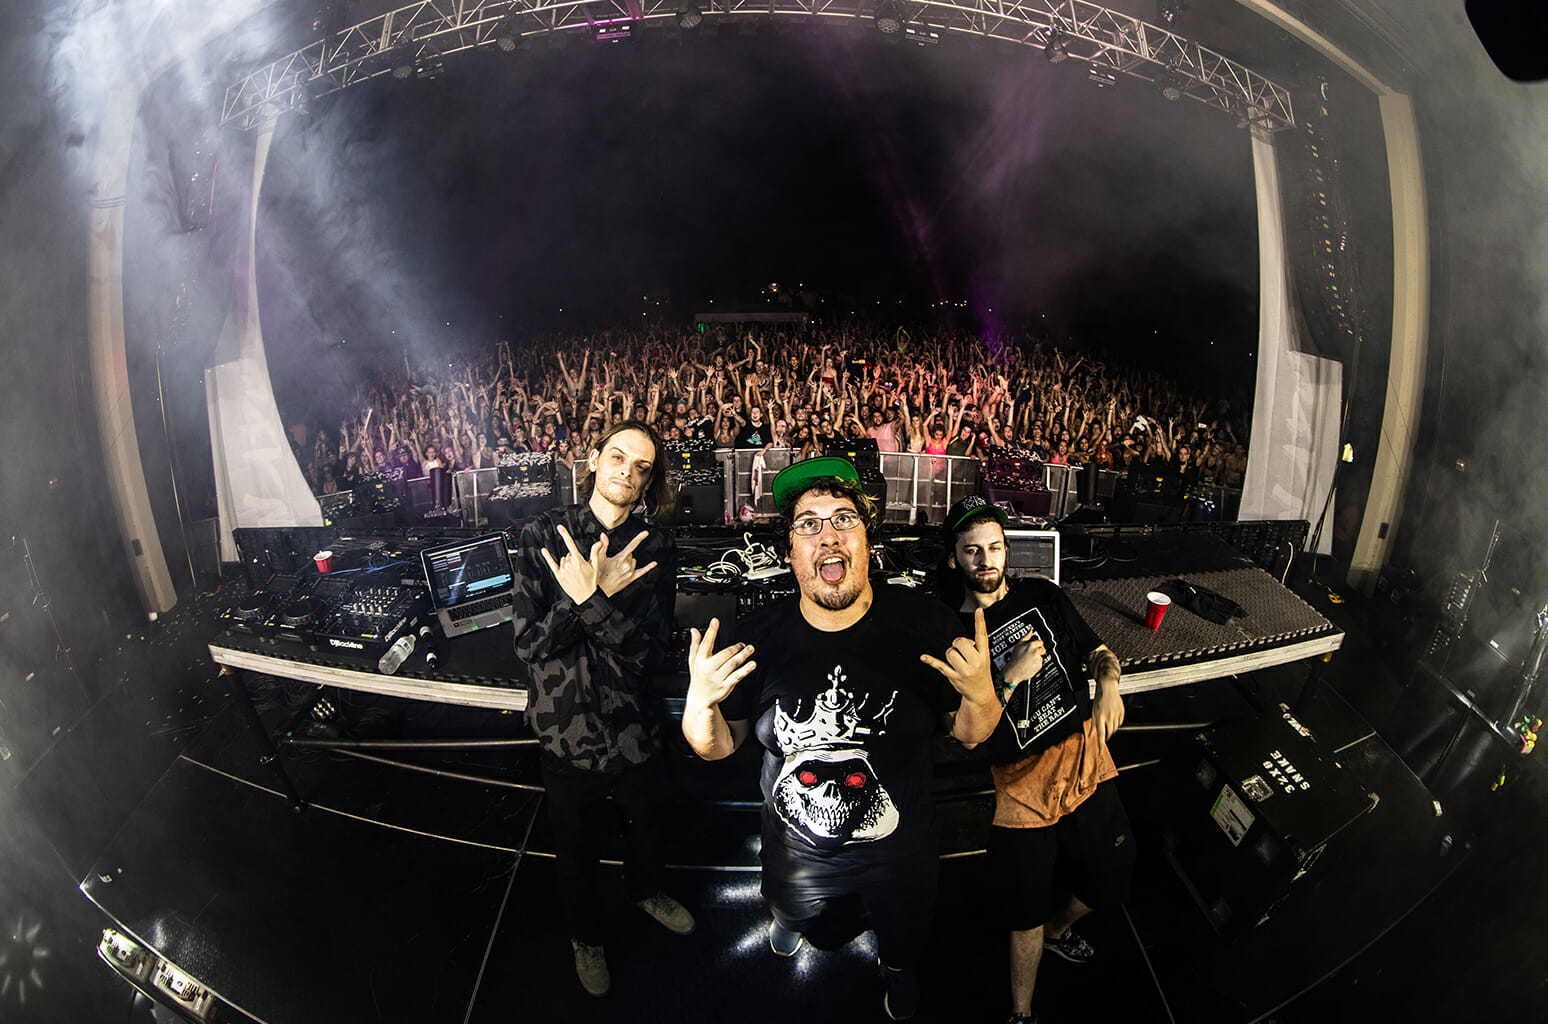 Zeds Dead and Snails release slimy dubstep collaboration, 'Magnets'Zeds Dead Snails Magnets